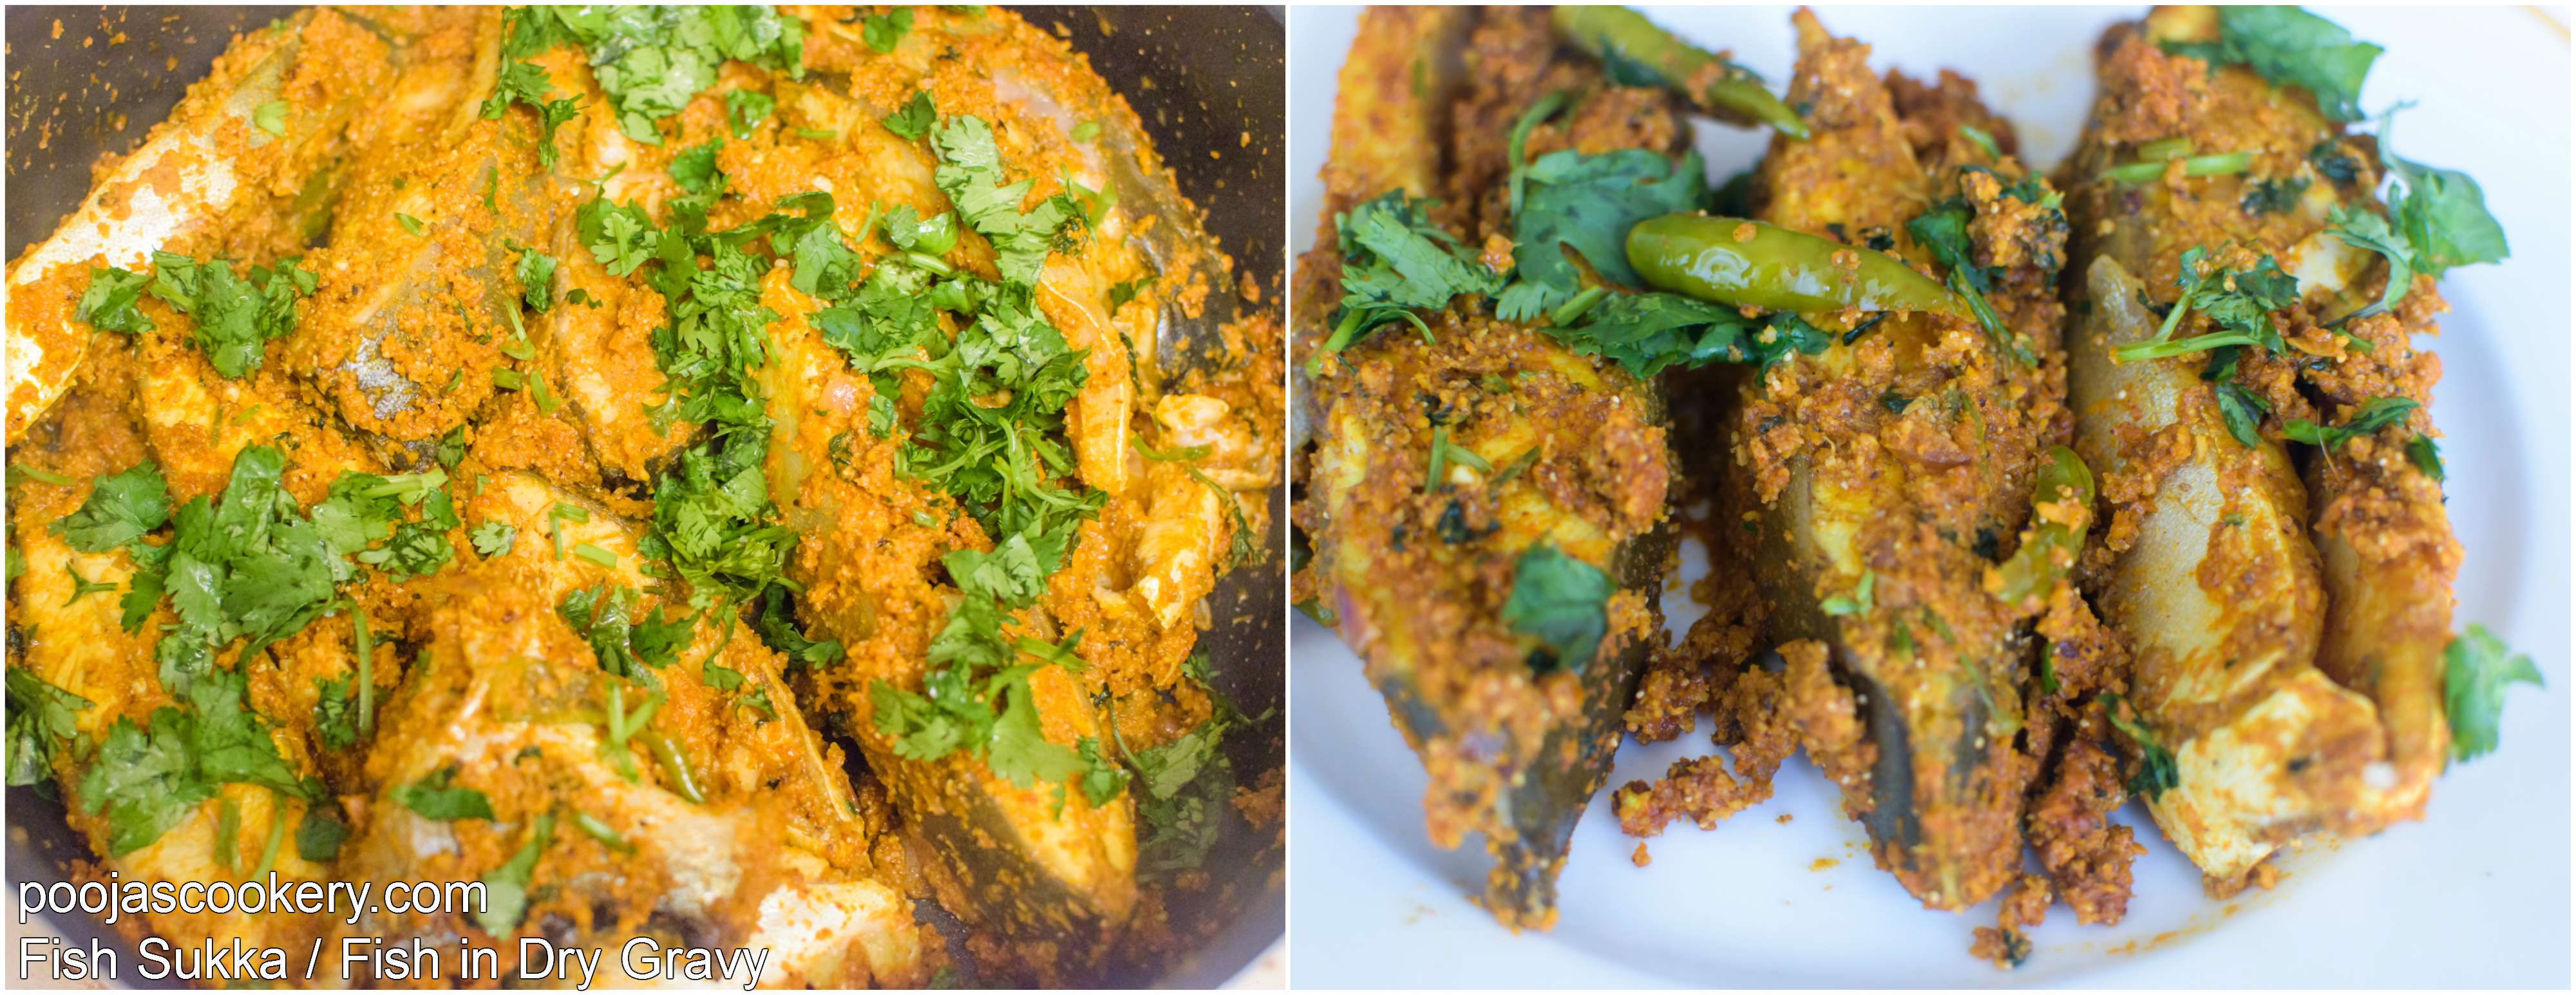 Coriander leaves sprinkled and served | poojascookery.com